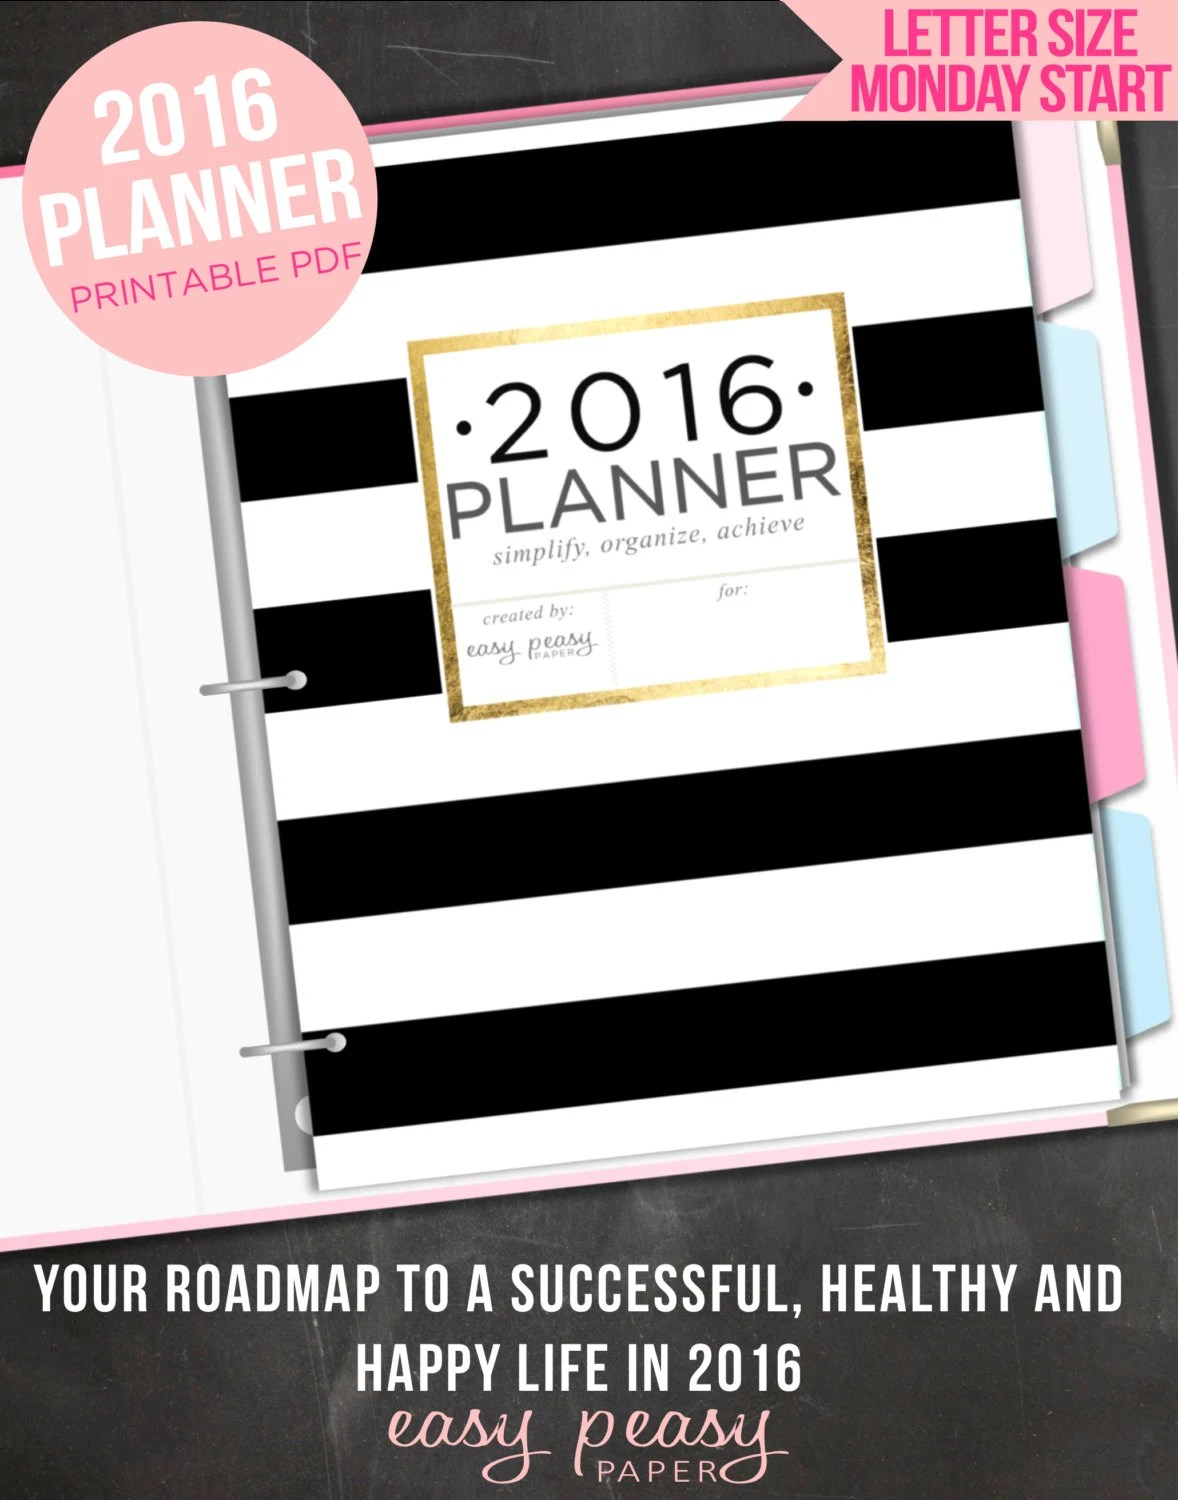 Planner Printable Organizer Letter By Indigoprintables